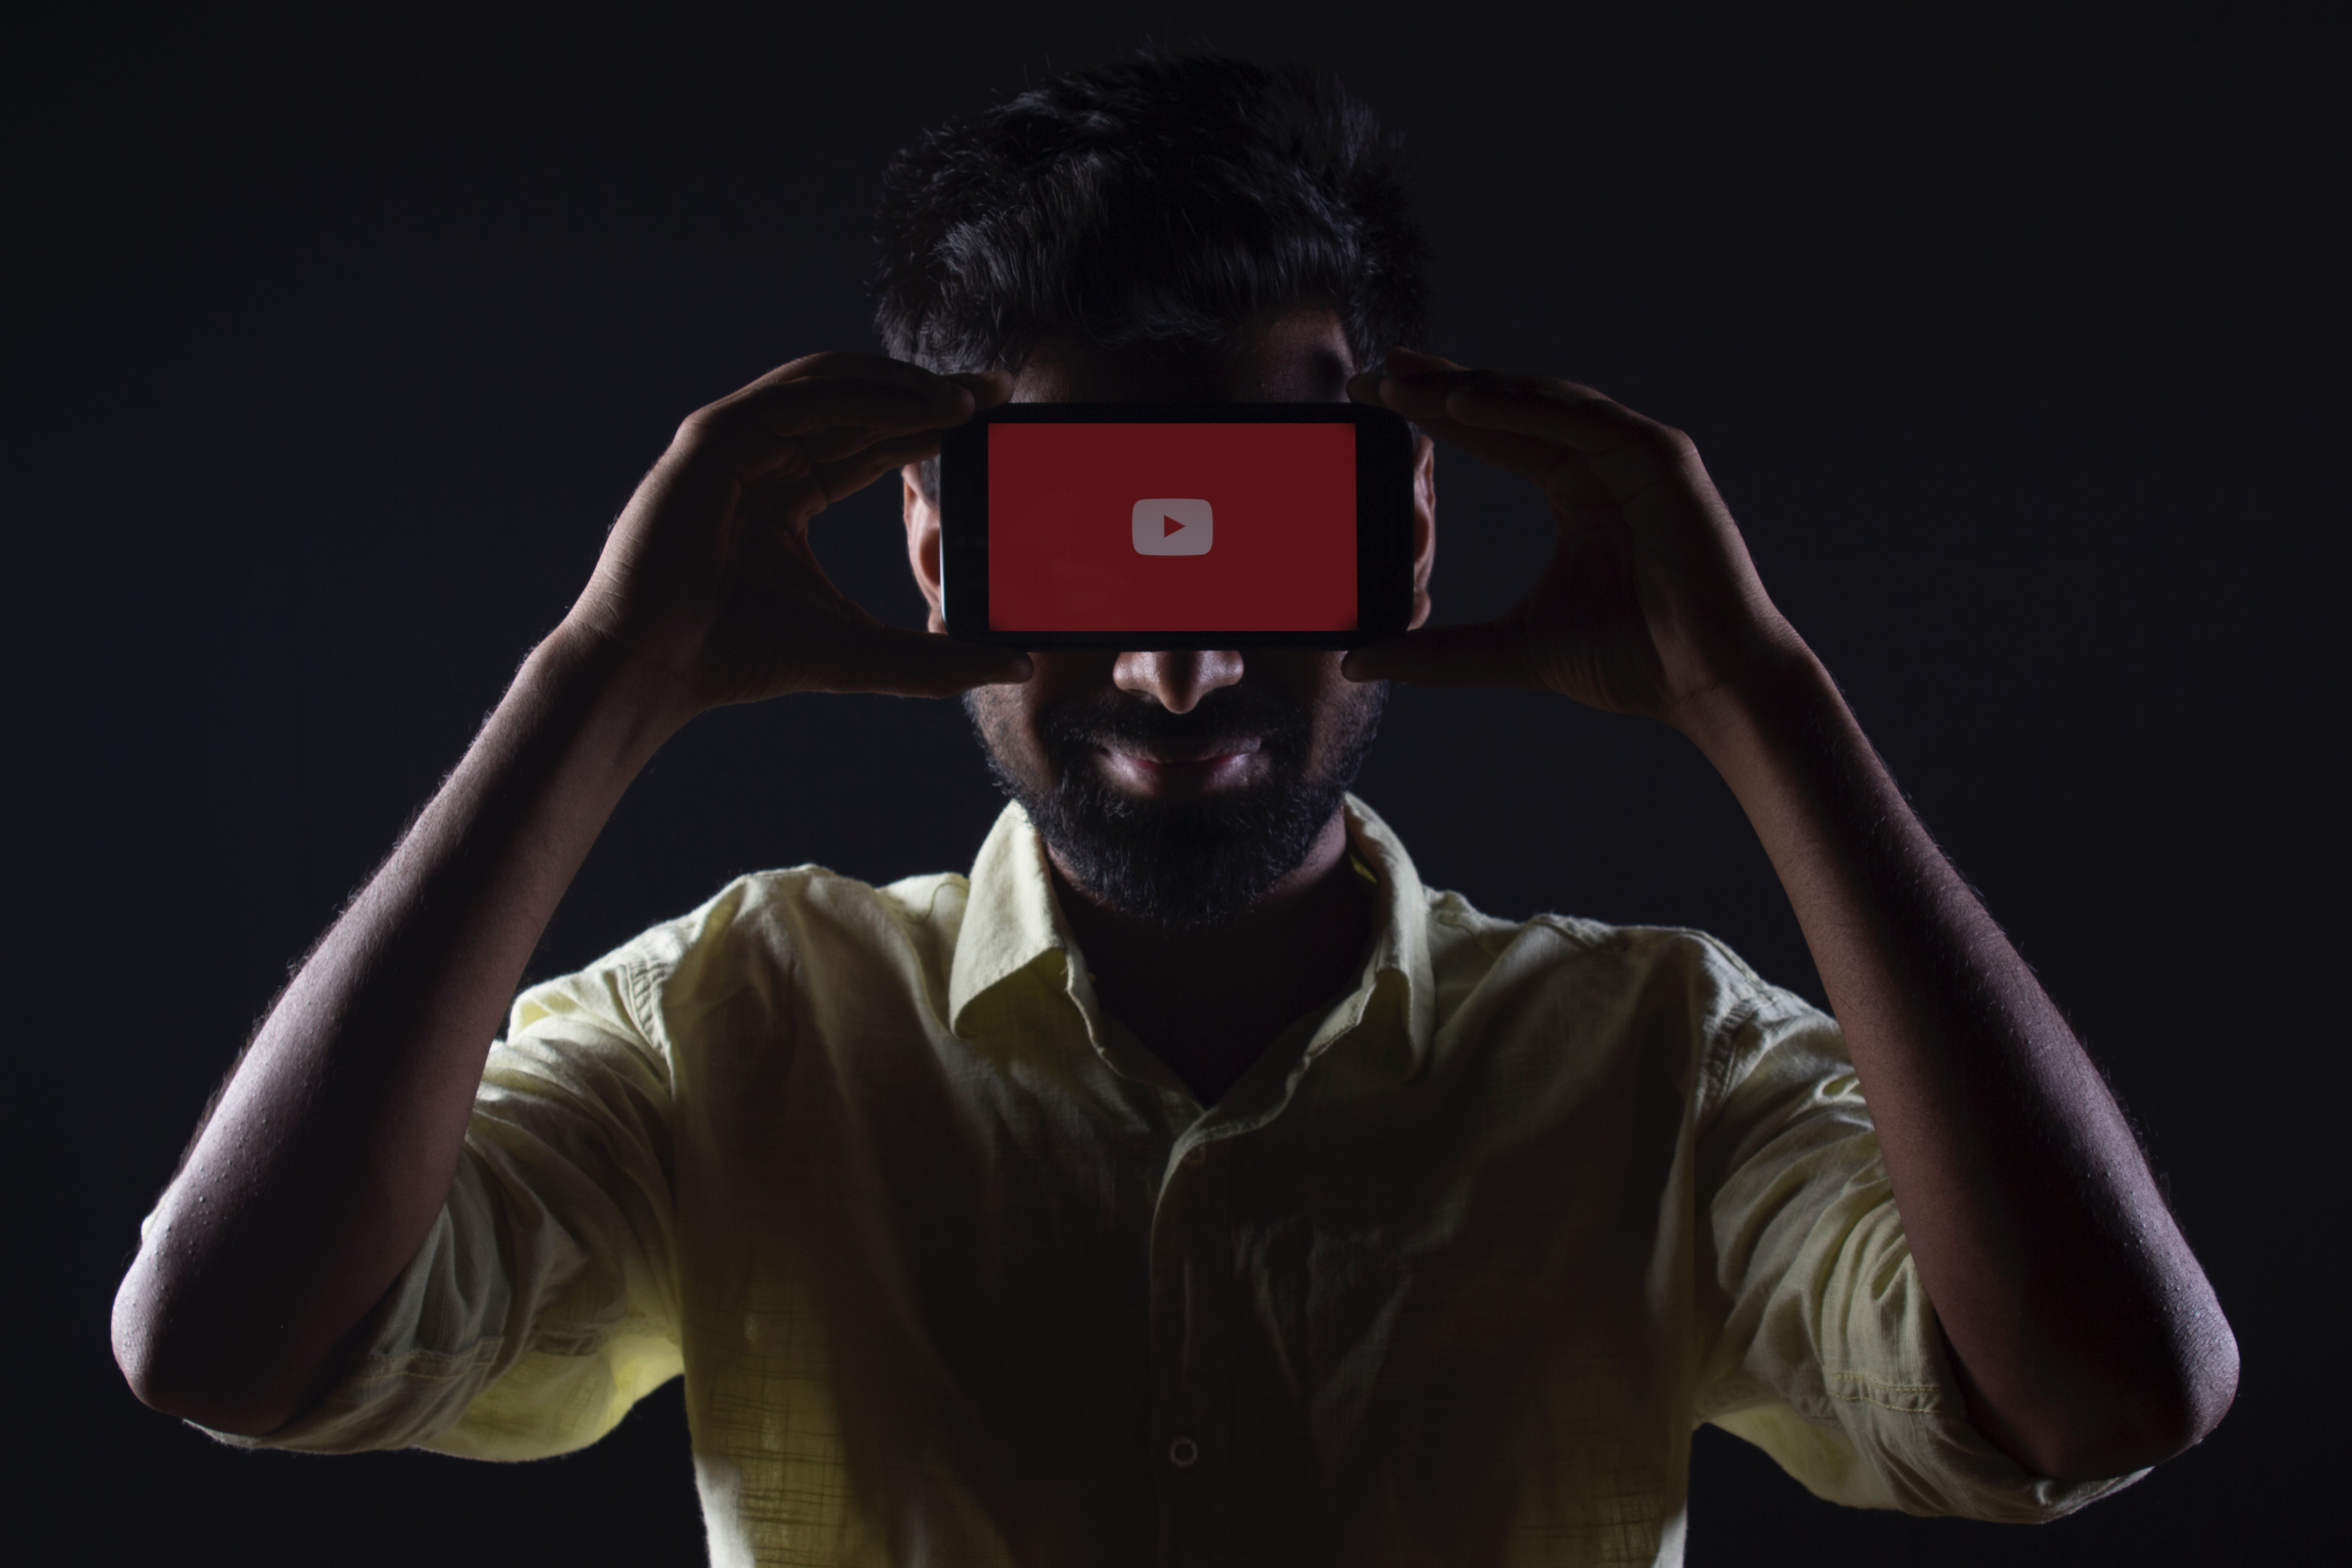 Man holding phone to eyes with YouTube logo displayed on screen